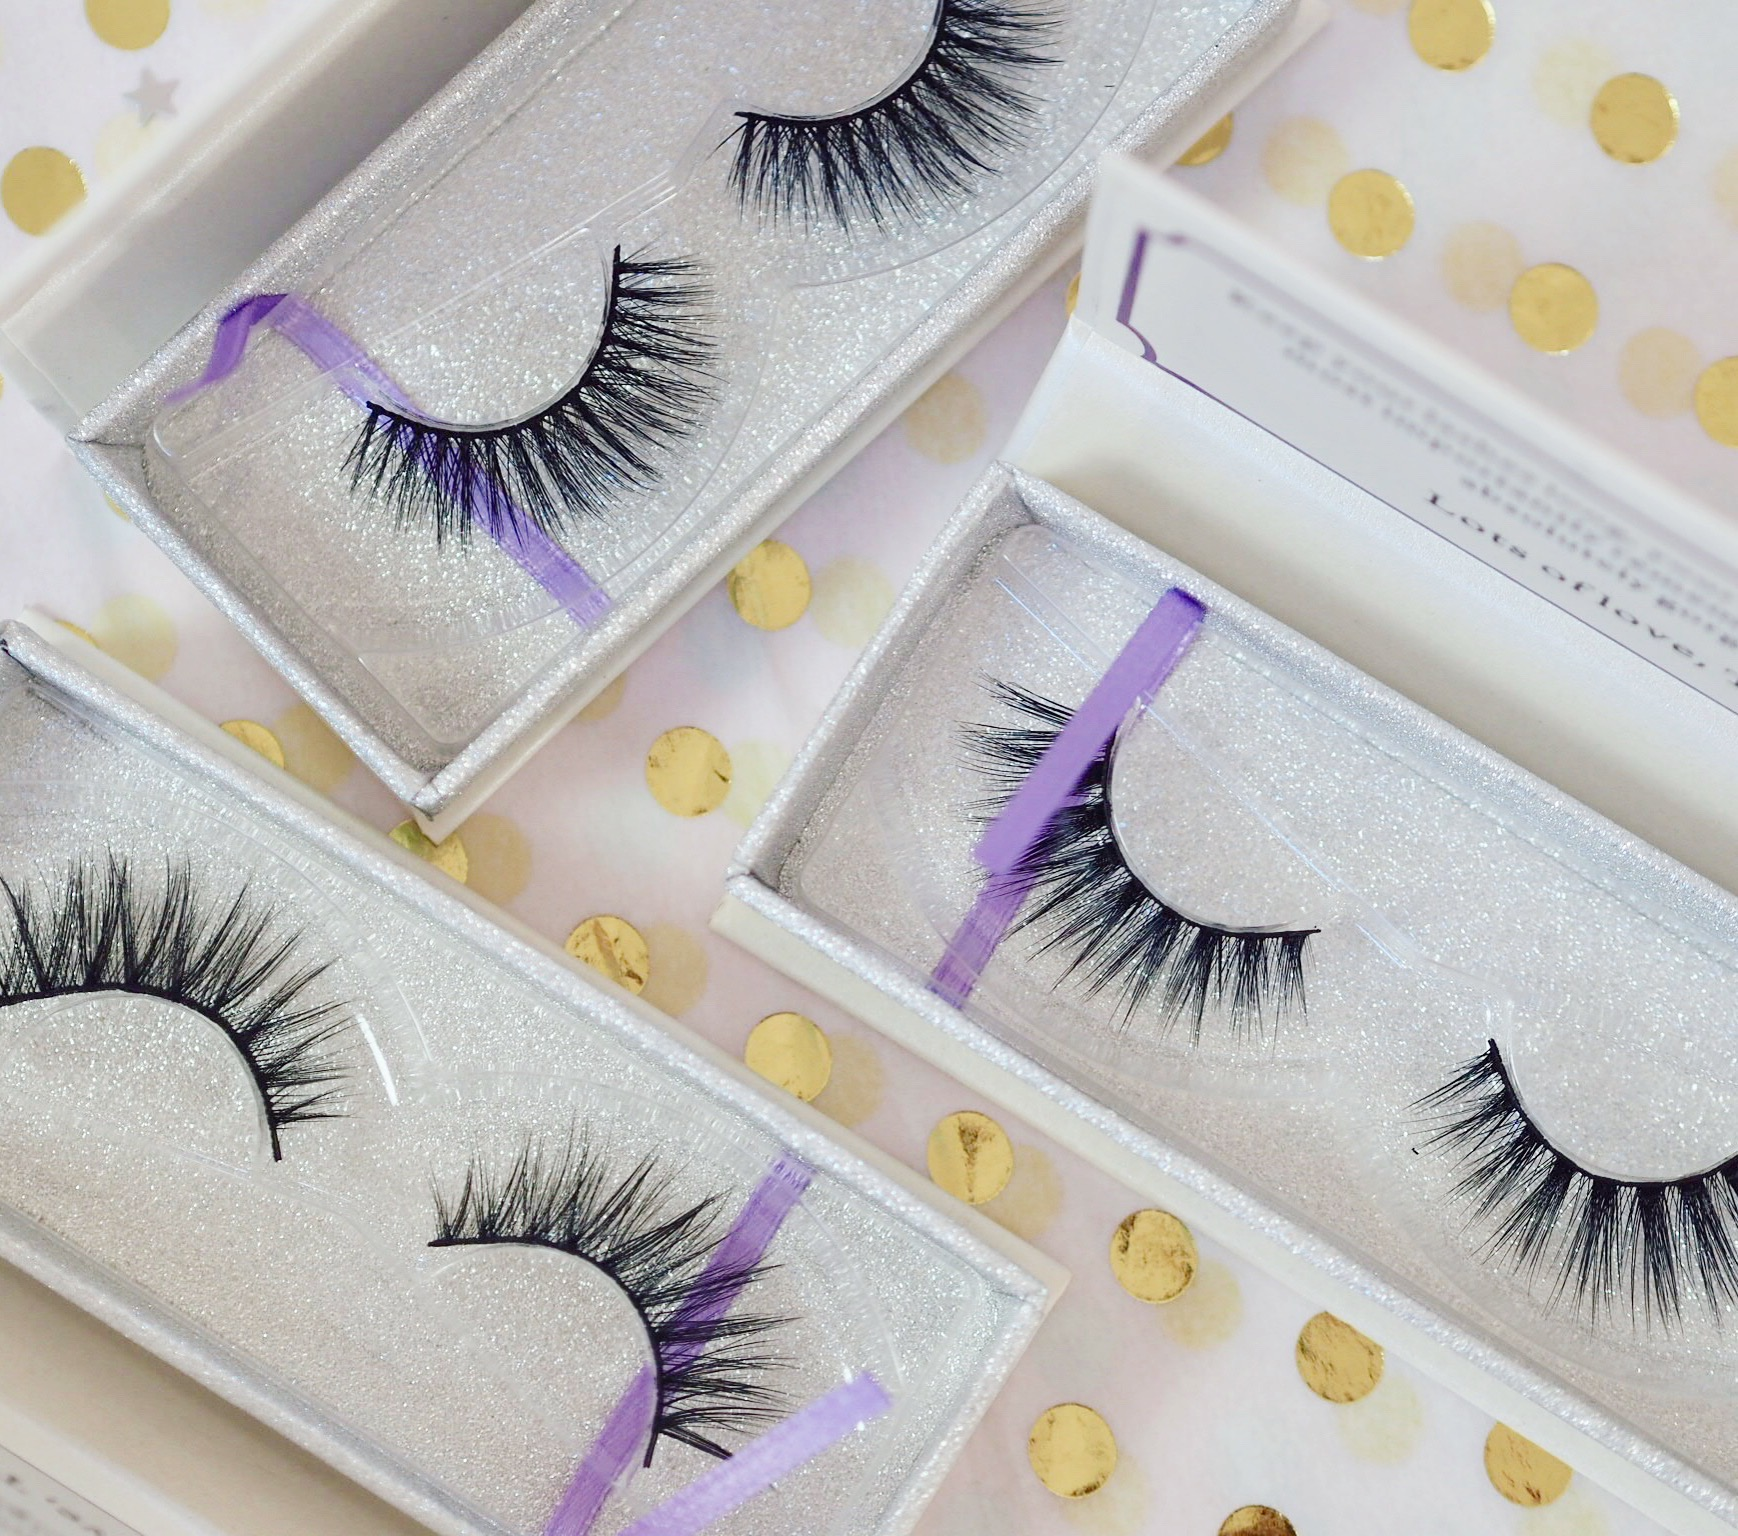 3 indigo rosee lashes on a gold background